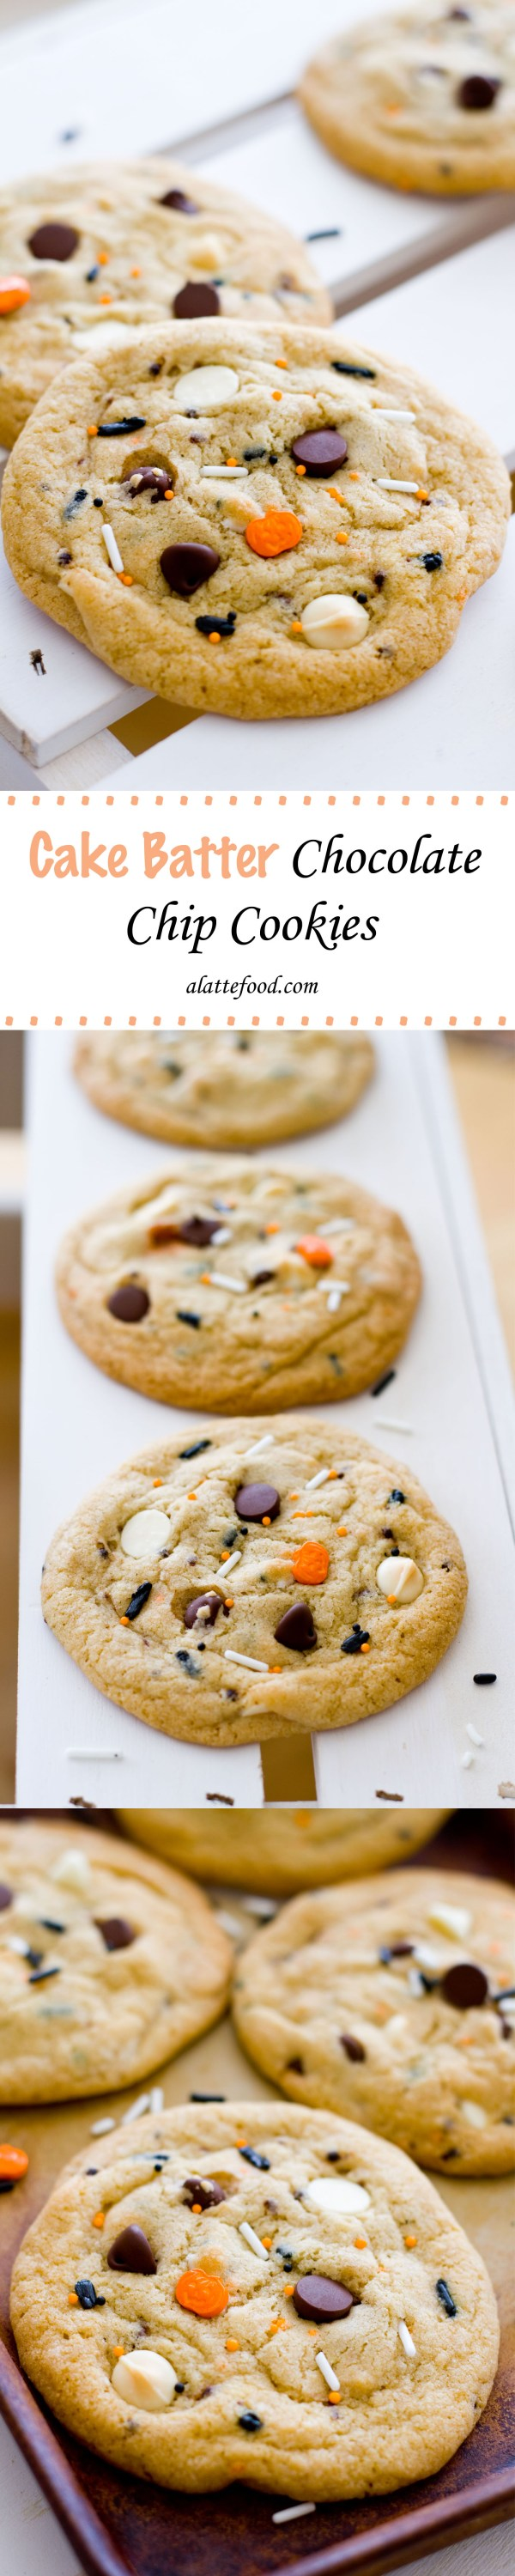 Cake Batter Chocolate Chip Cookies | A Latte Food